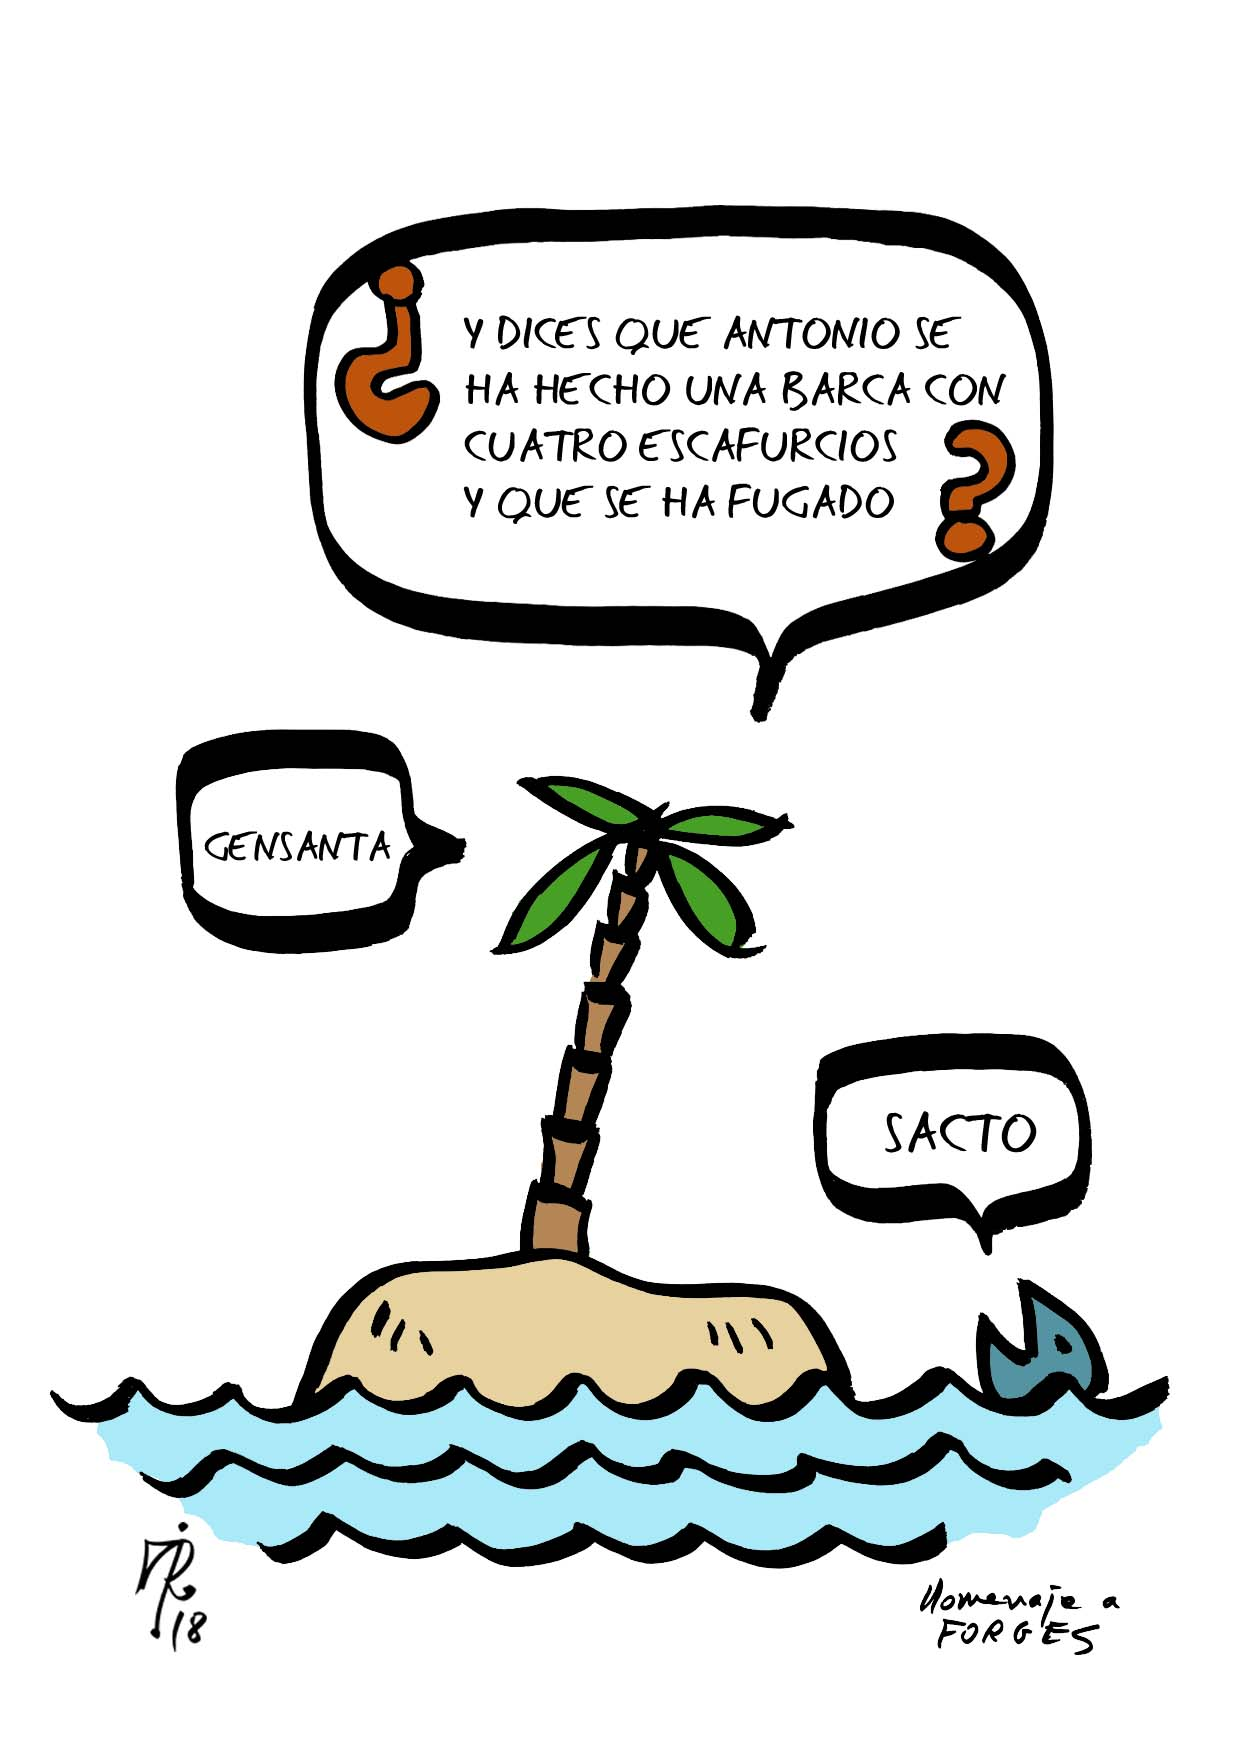 homenaje a Forges